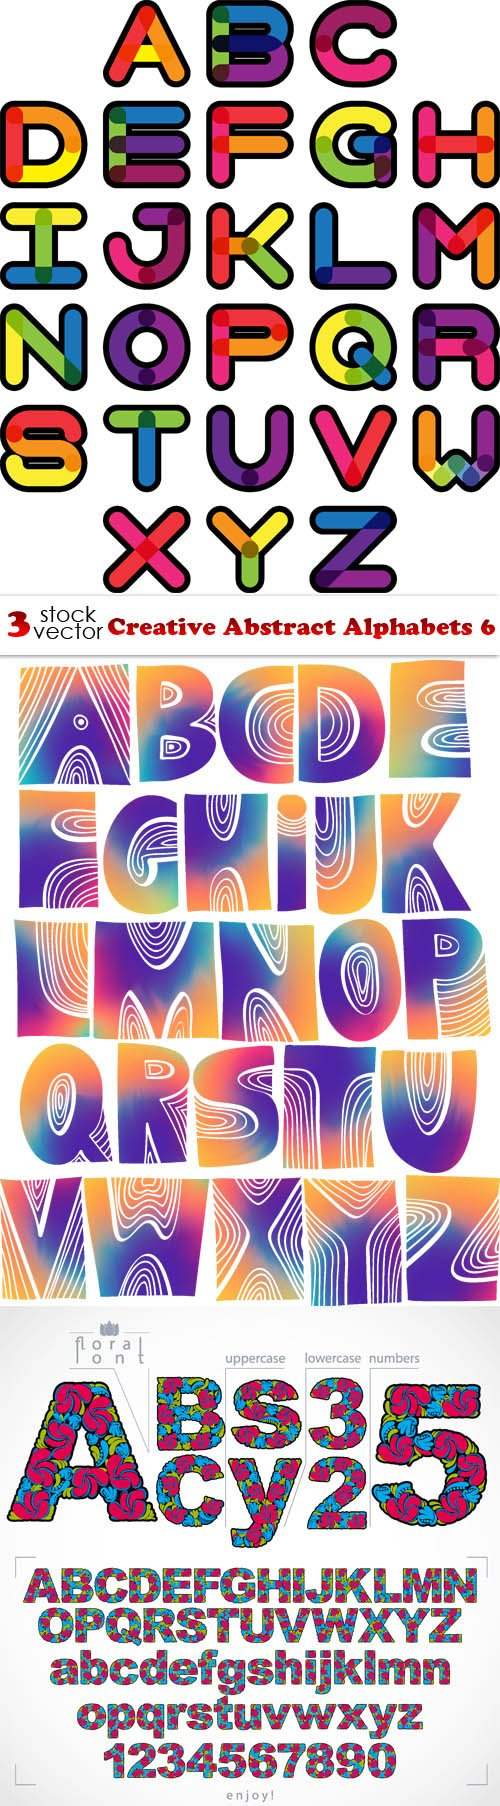 Vectors - Creative Abstract Alphabets 6